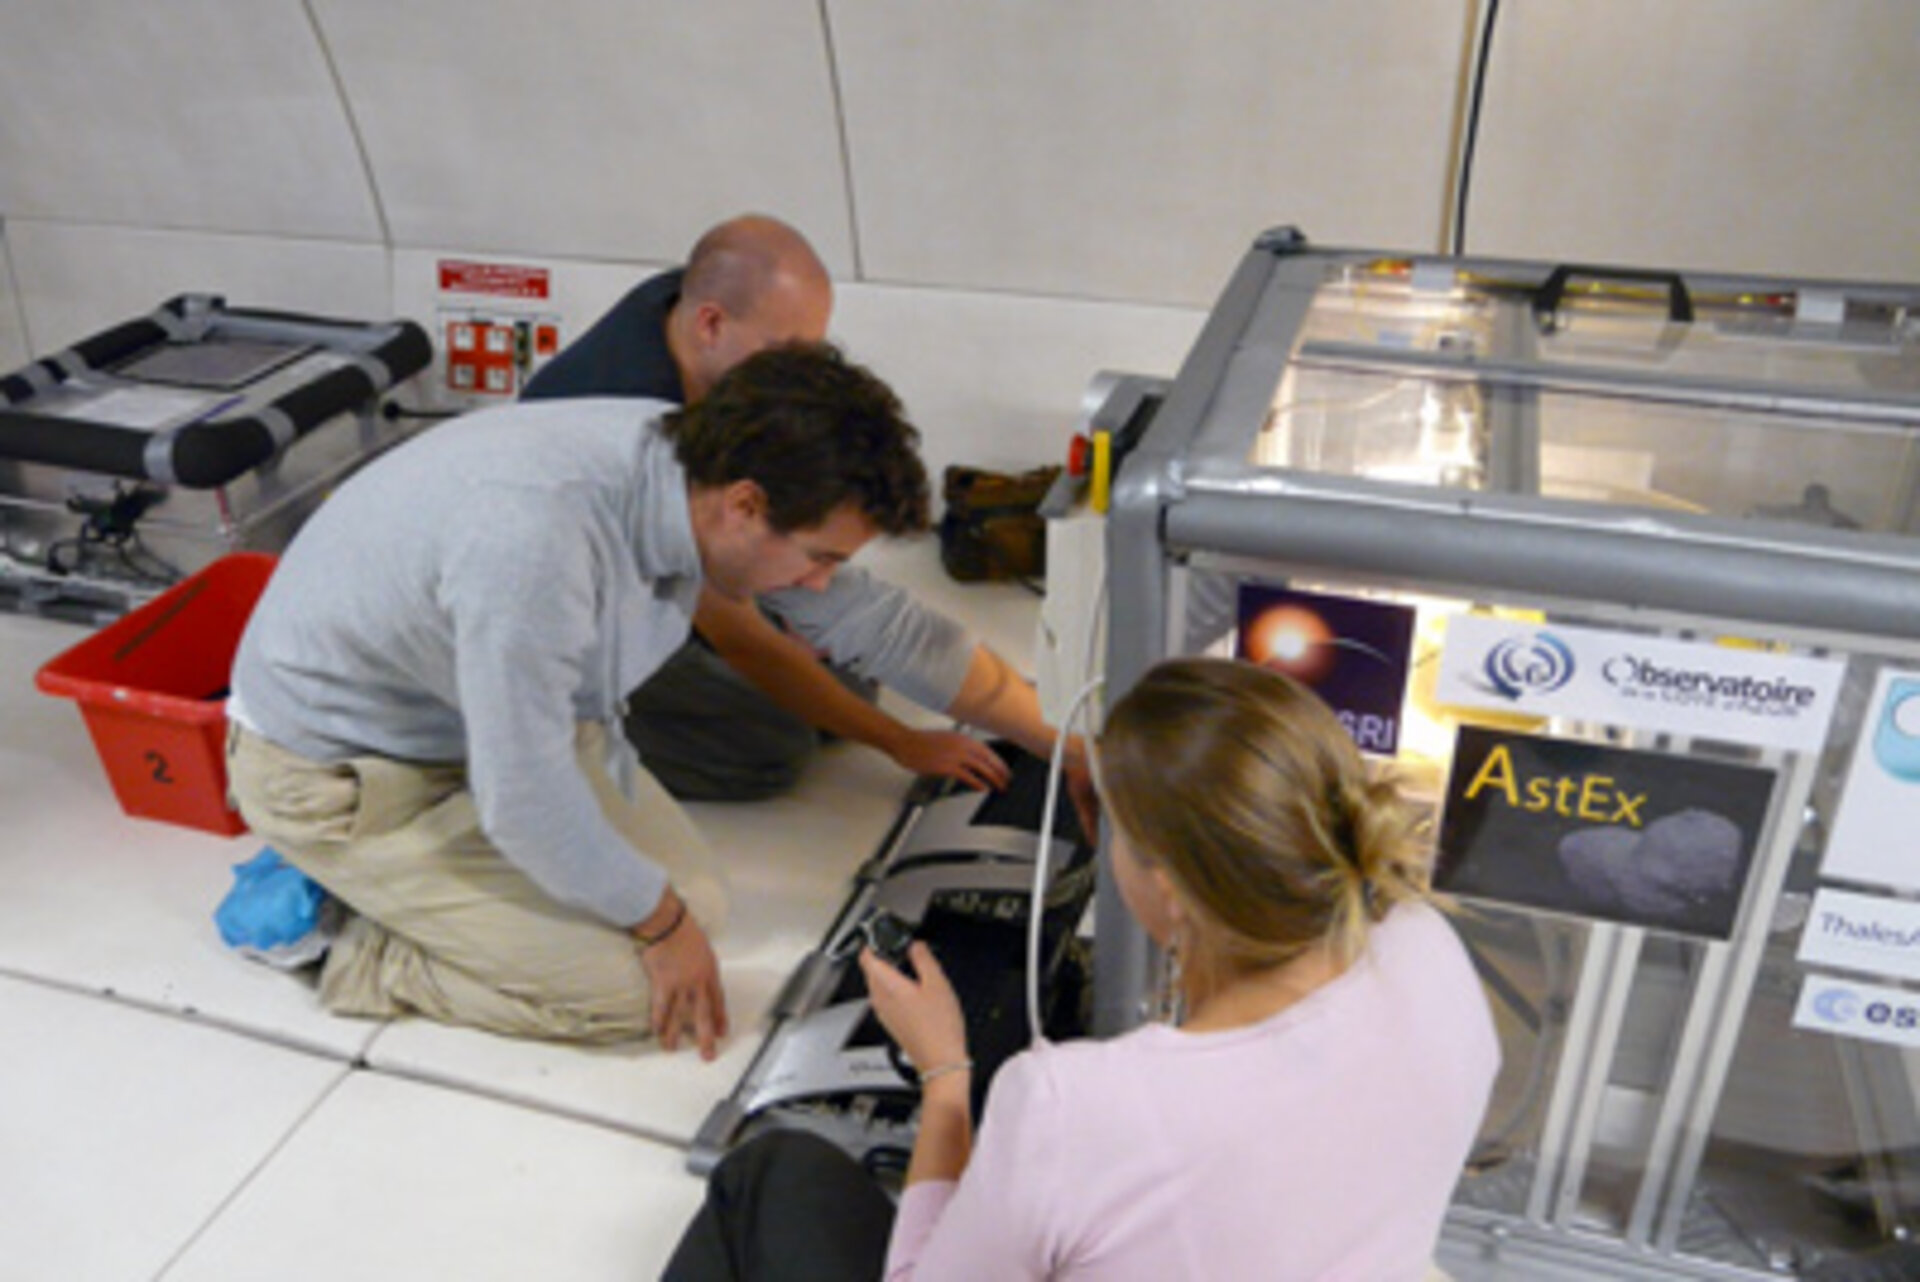 The AstEx team setting their experiment